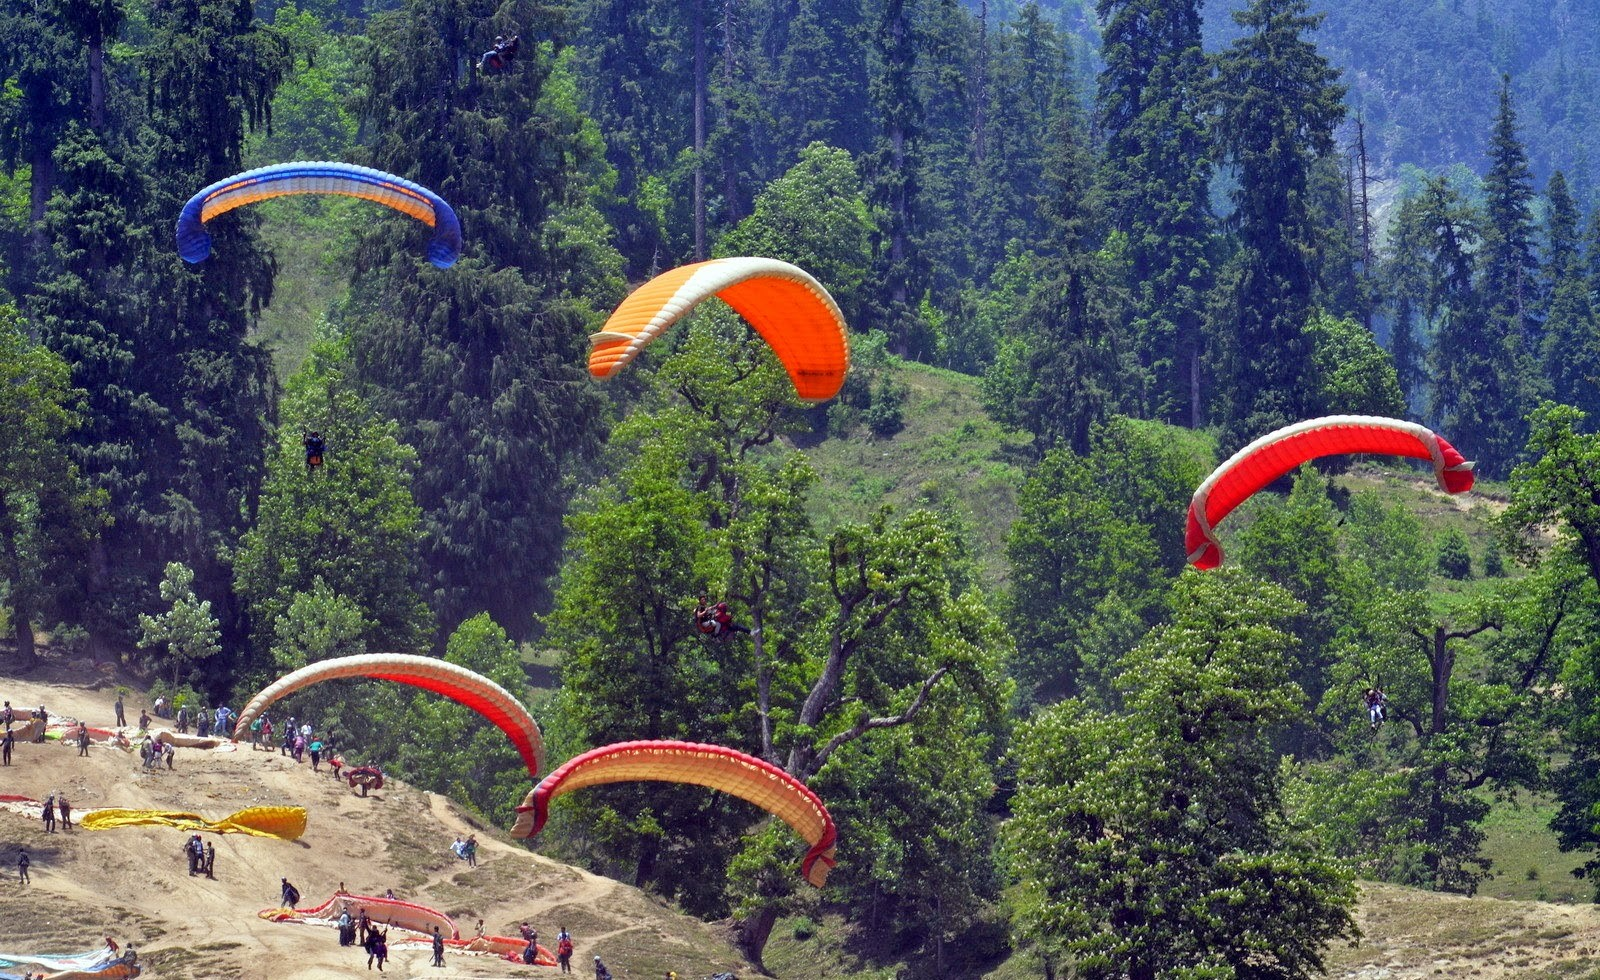 14 Adventure Sports To Enjoy In Himachal Pradesh For The Adrenaline Junkie In You